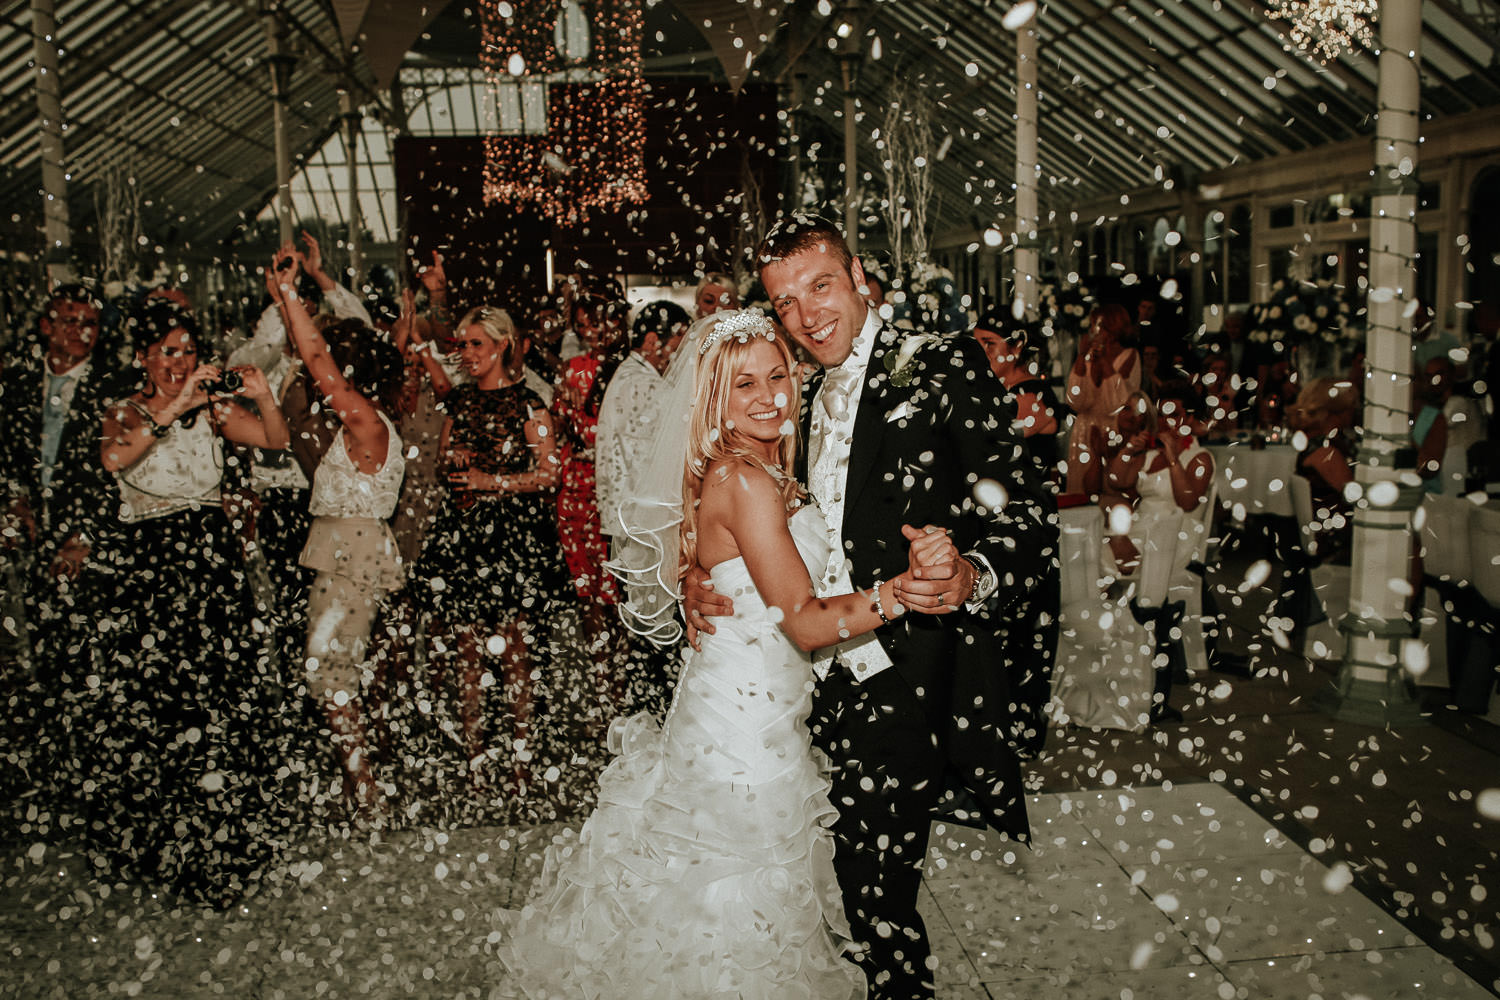 Liverpool wedding photographer. Liverpool and Southhampton footballer Rickie Lambert and wife showered in confetti on wedding day